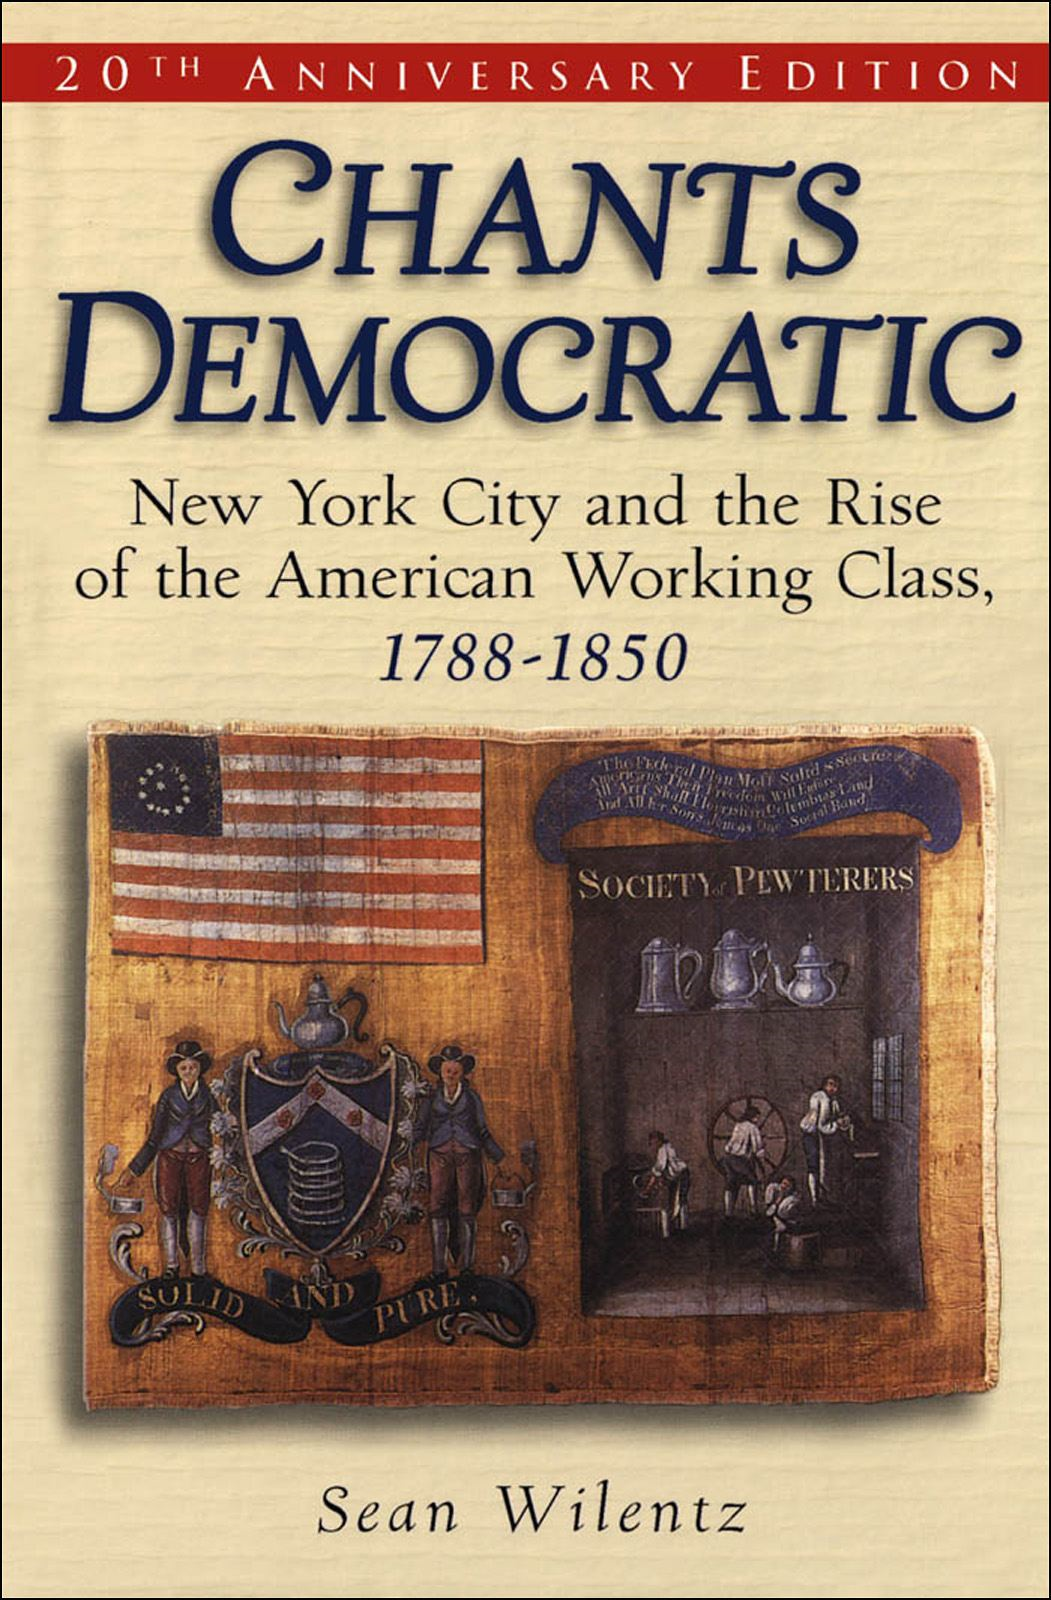 Chants Democratic : New York City and the Rise of the American Working Class 1788-1850